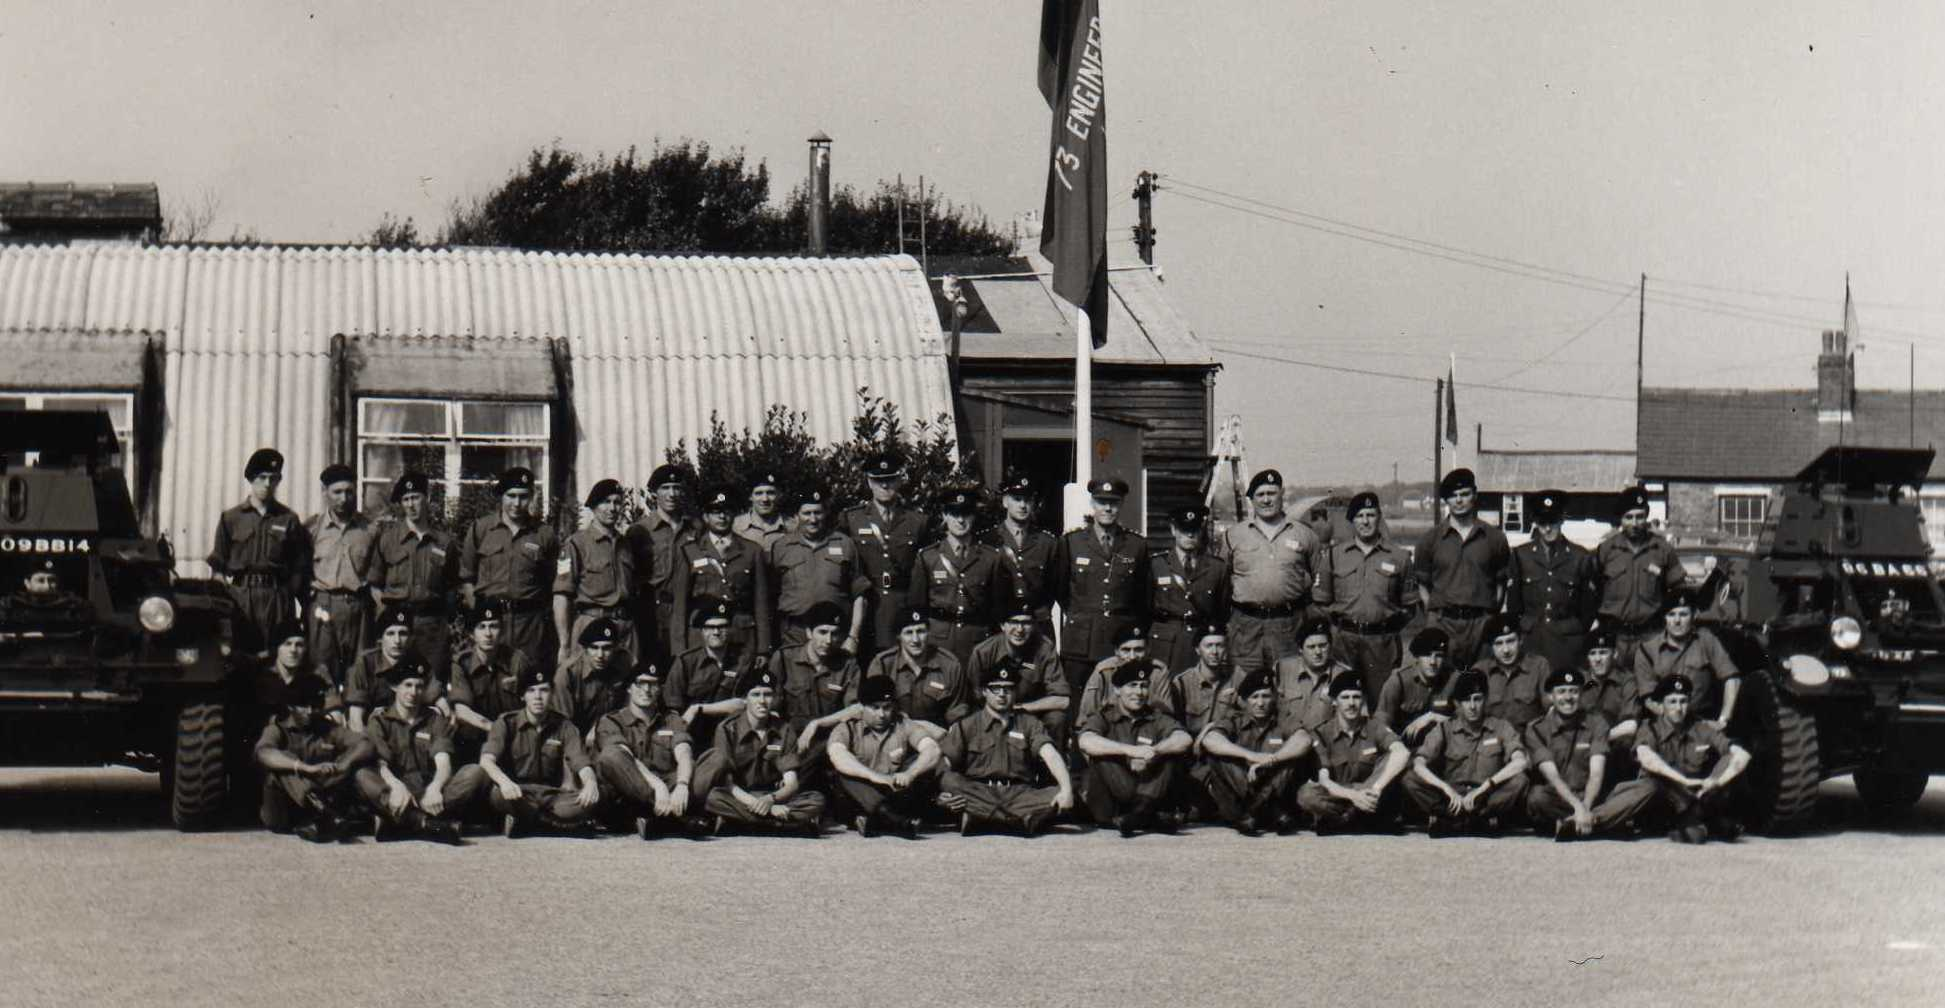 Sqn photo, 1969 Camp, Altcar